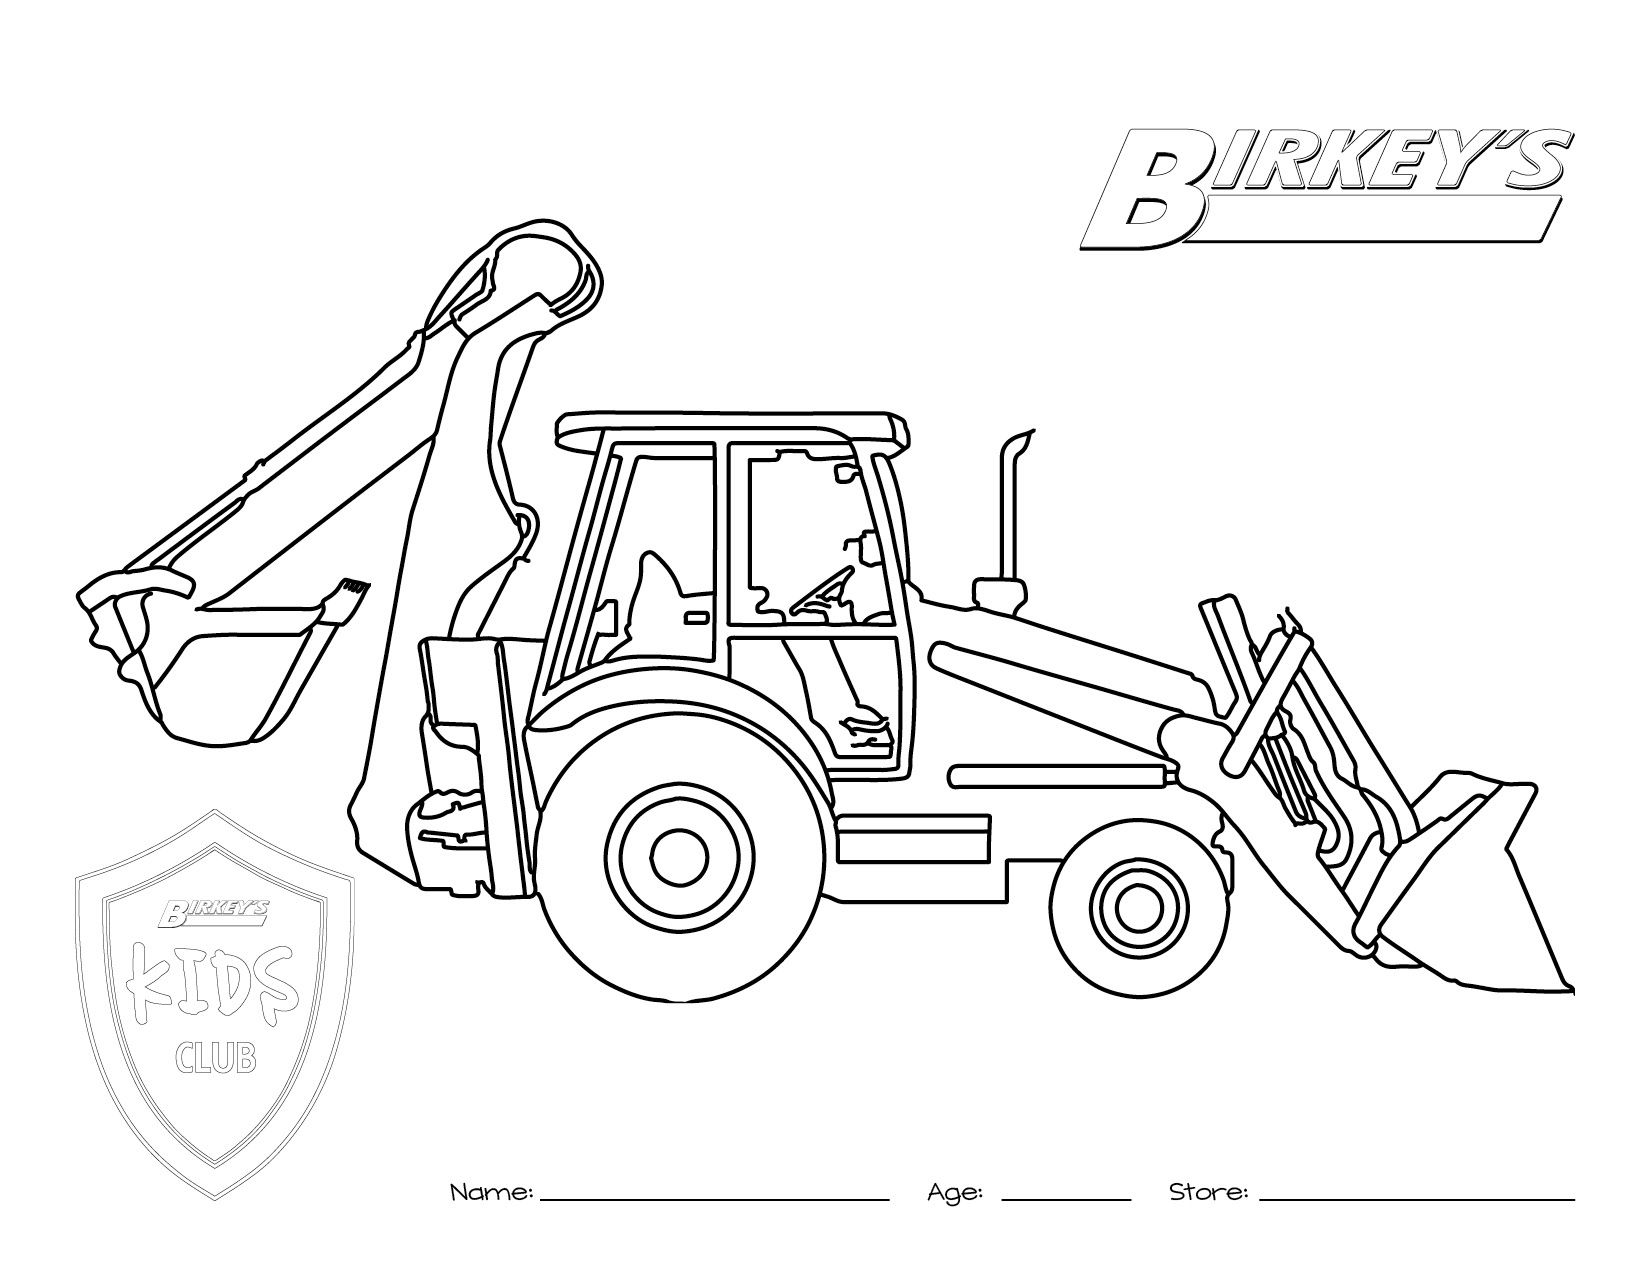 Tractor Backhoe Coloring Page Tractor Coloring Pages Truck Coloring Pages Free Coloring Pages